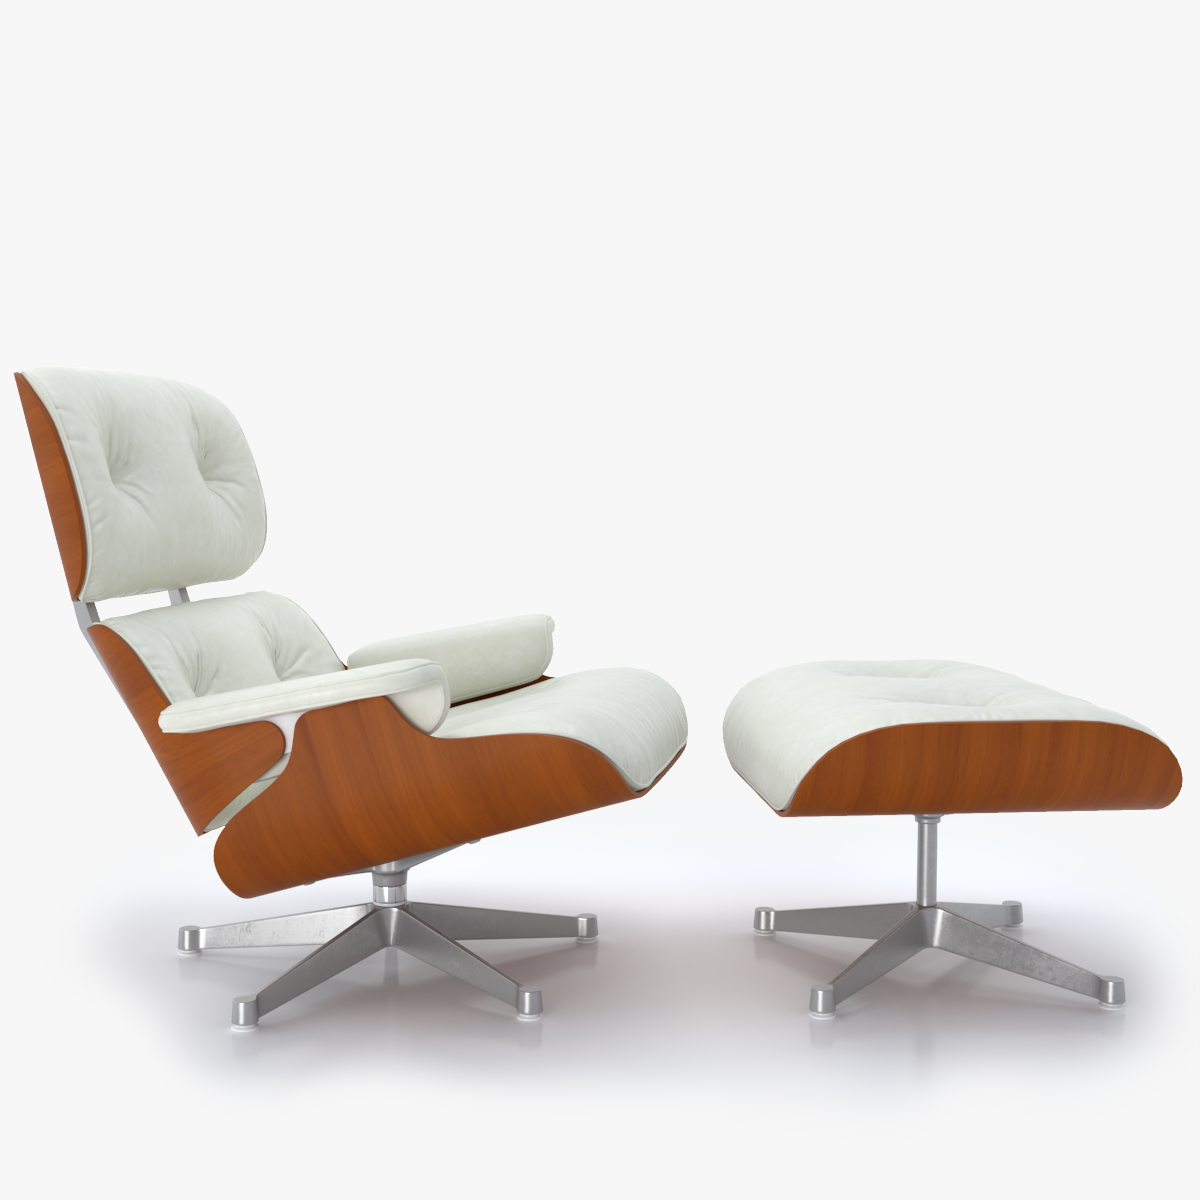 Awe Inspiring Vitra Lounge Chair Ottoman New Dimensions Inzonedesignstudio Interior Chair Design Inzonedesignstudiocom